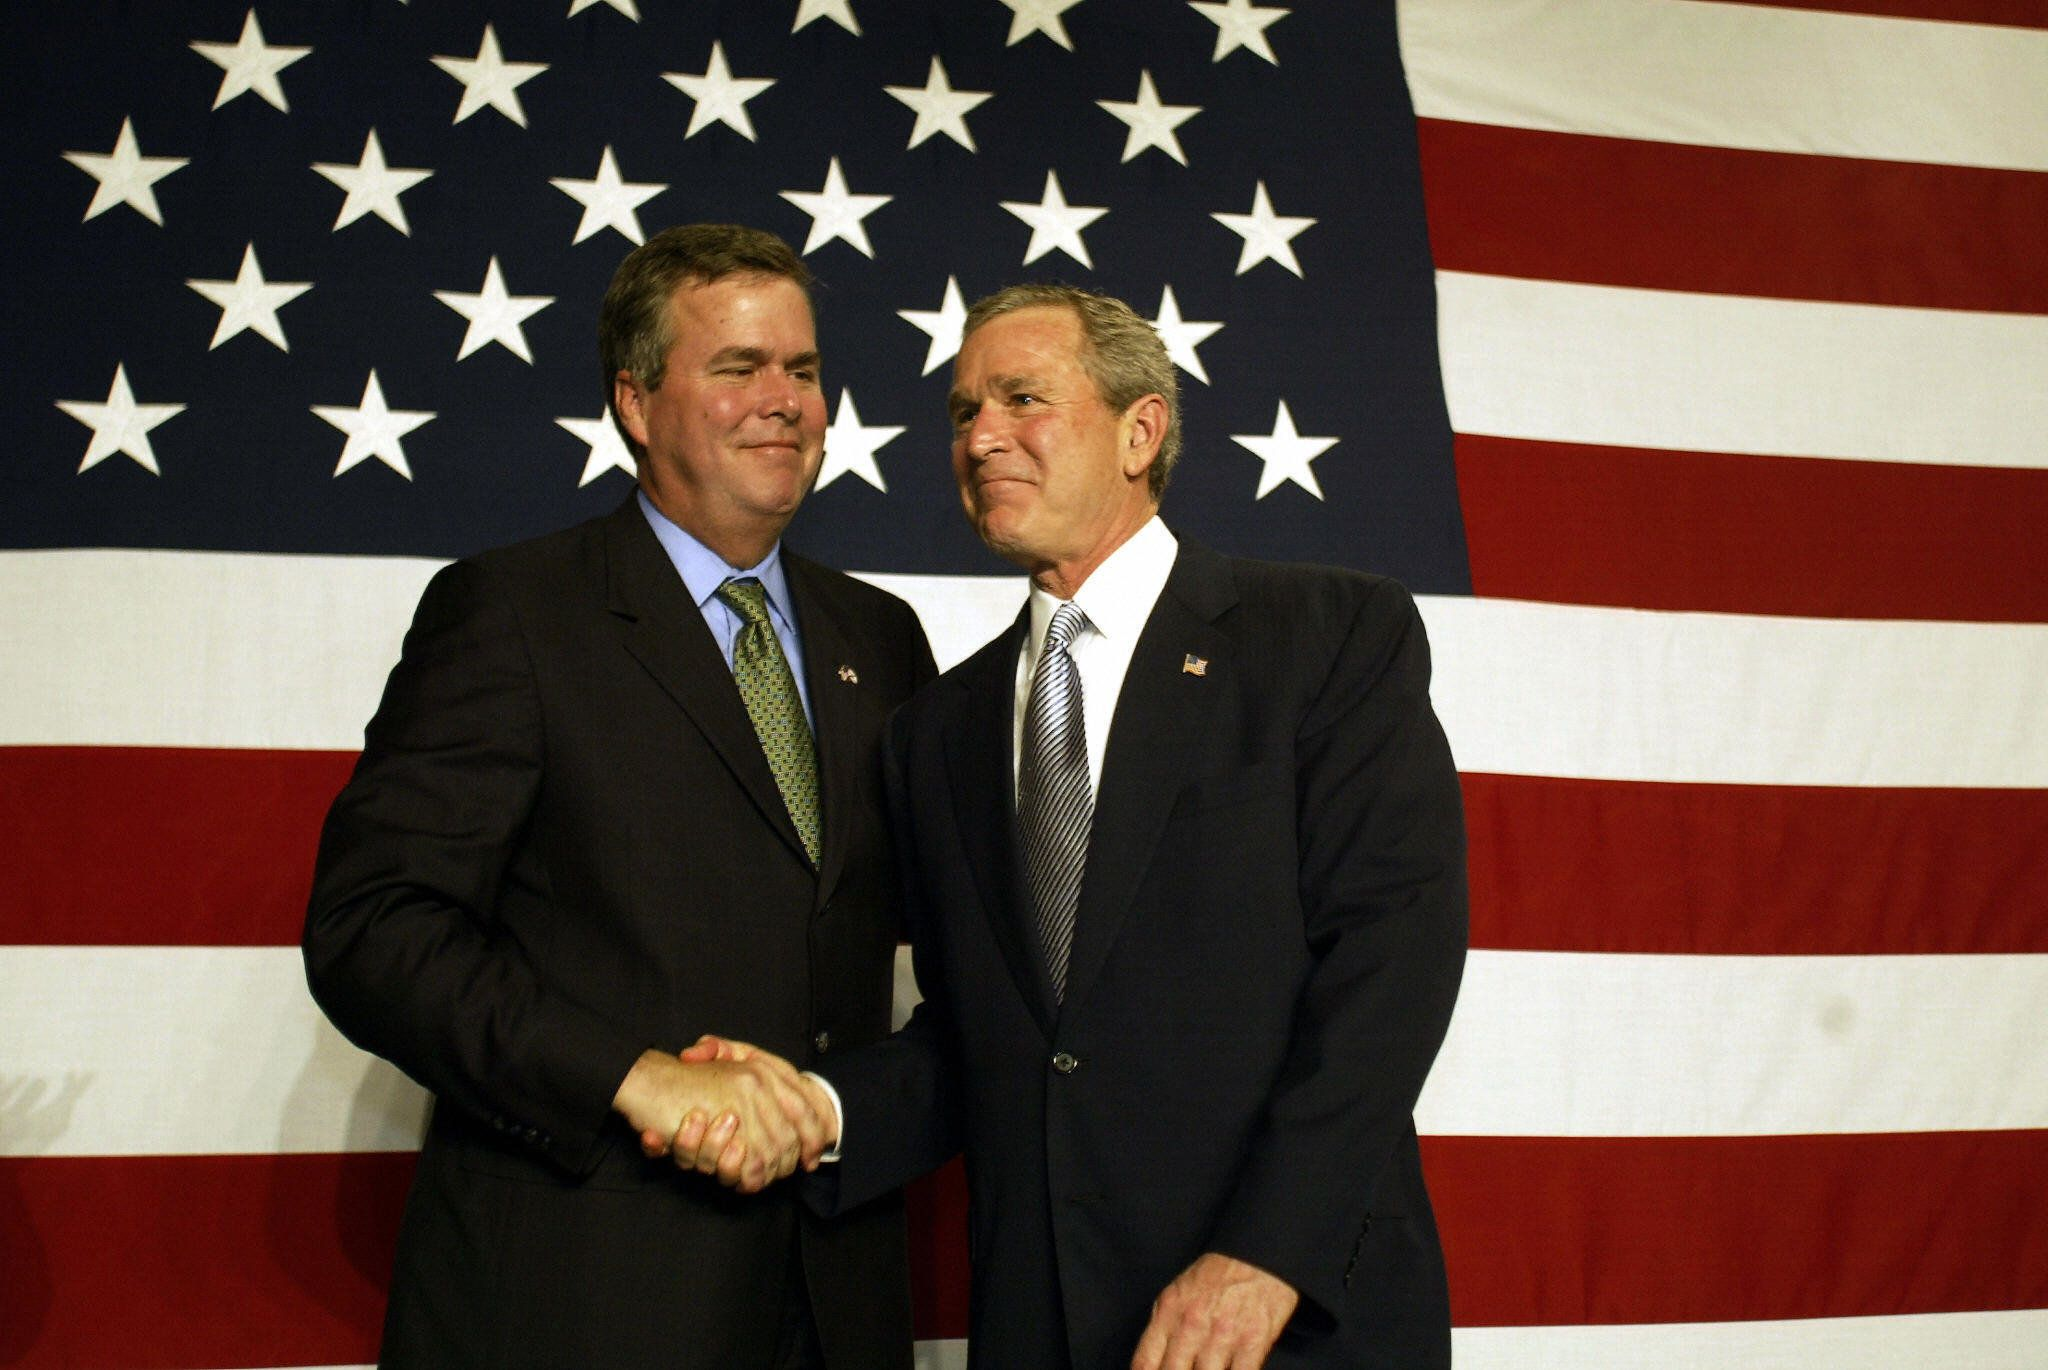 Jeb Bush's tax plan sounds like something his brother George would approve.